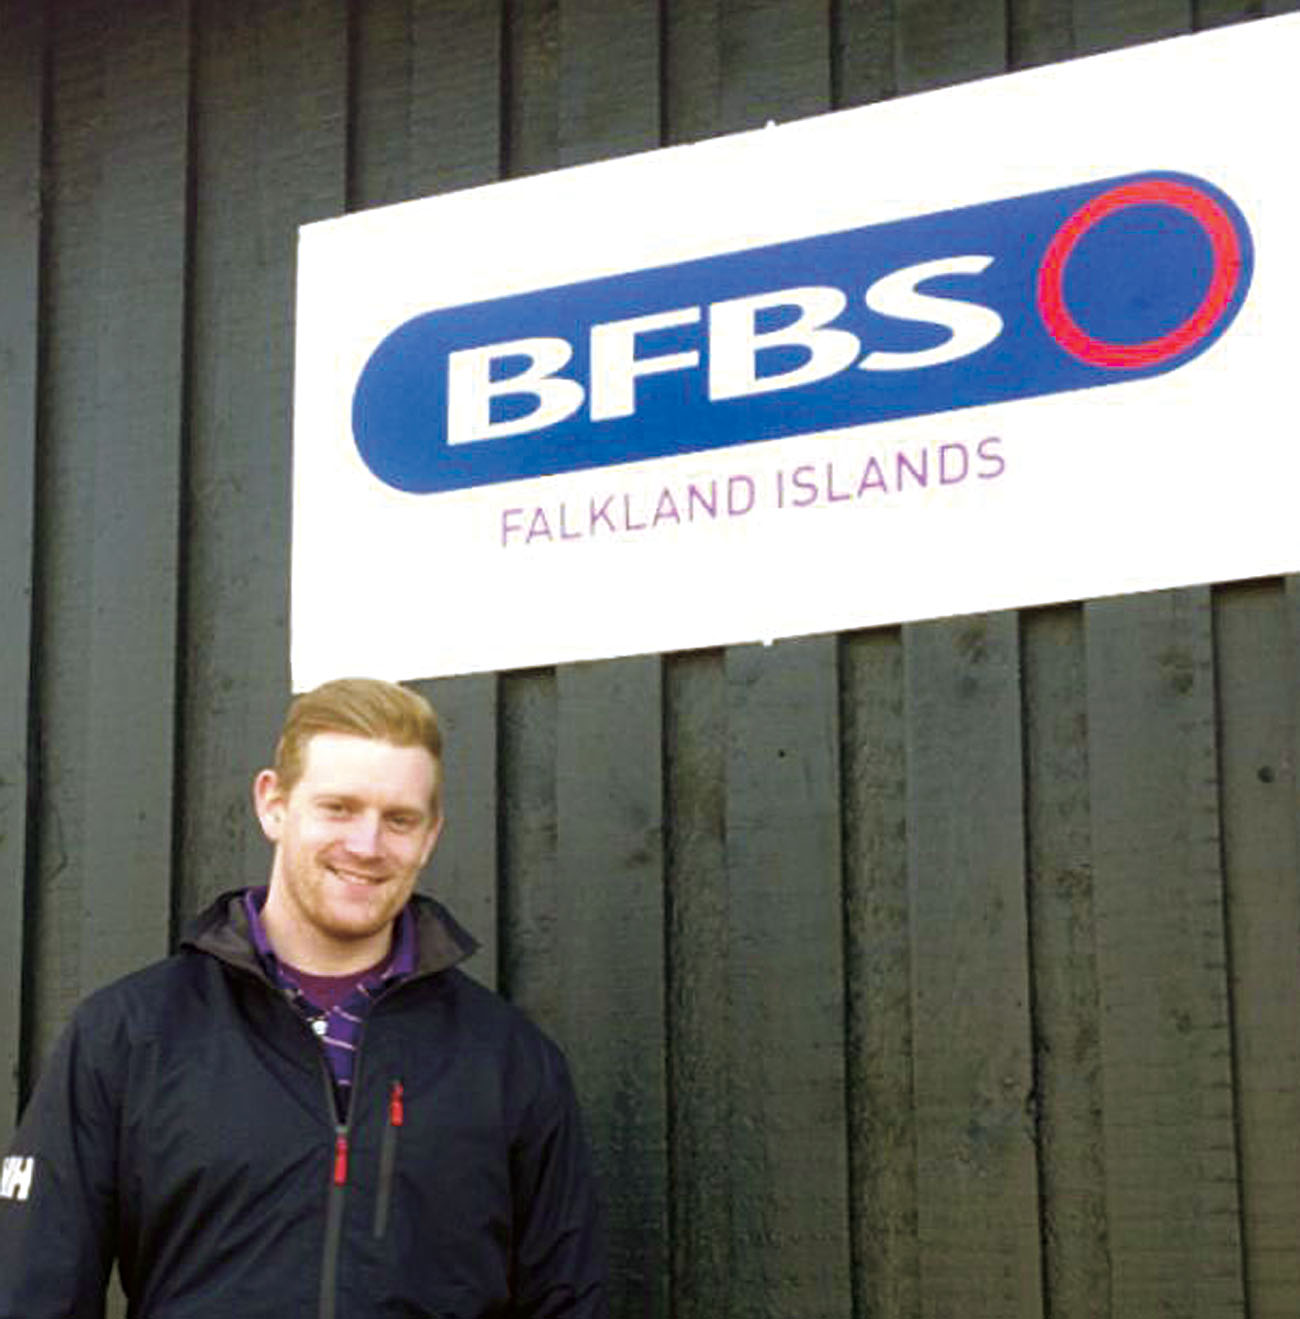 Chris Keen gets to work in his new studio at BFBS Falkland Islands.